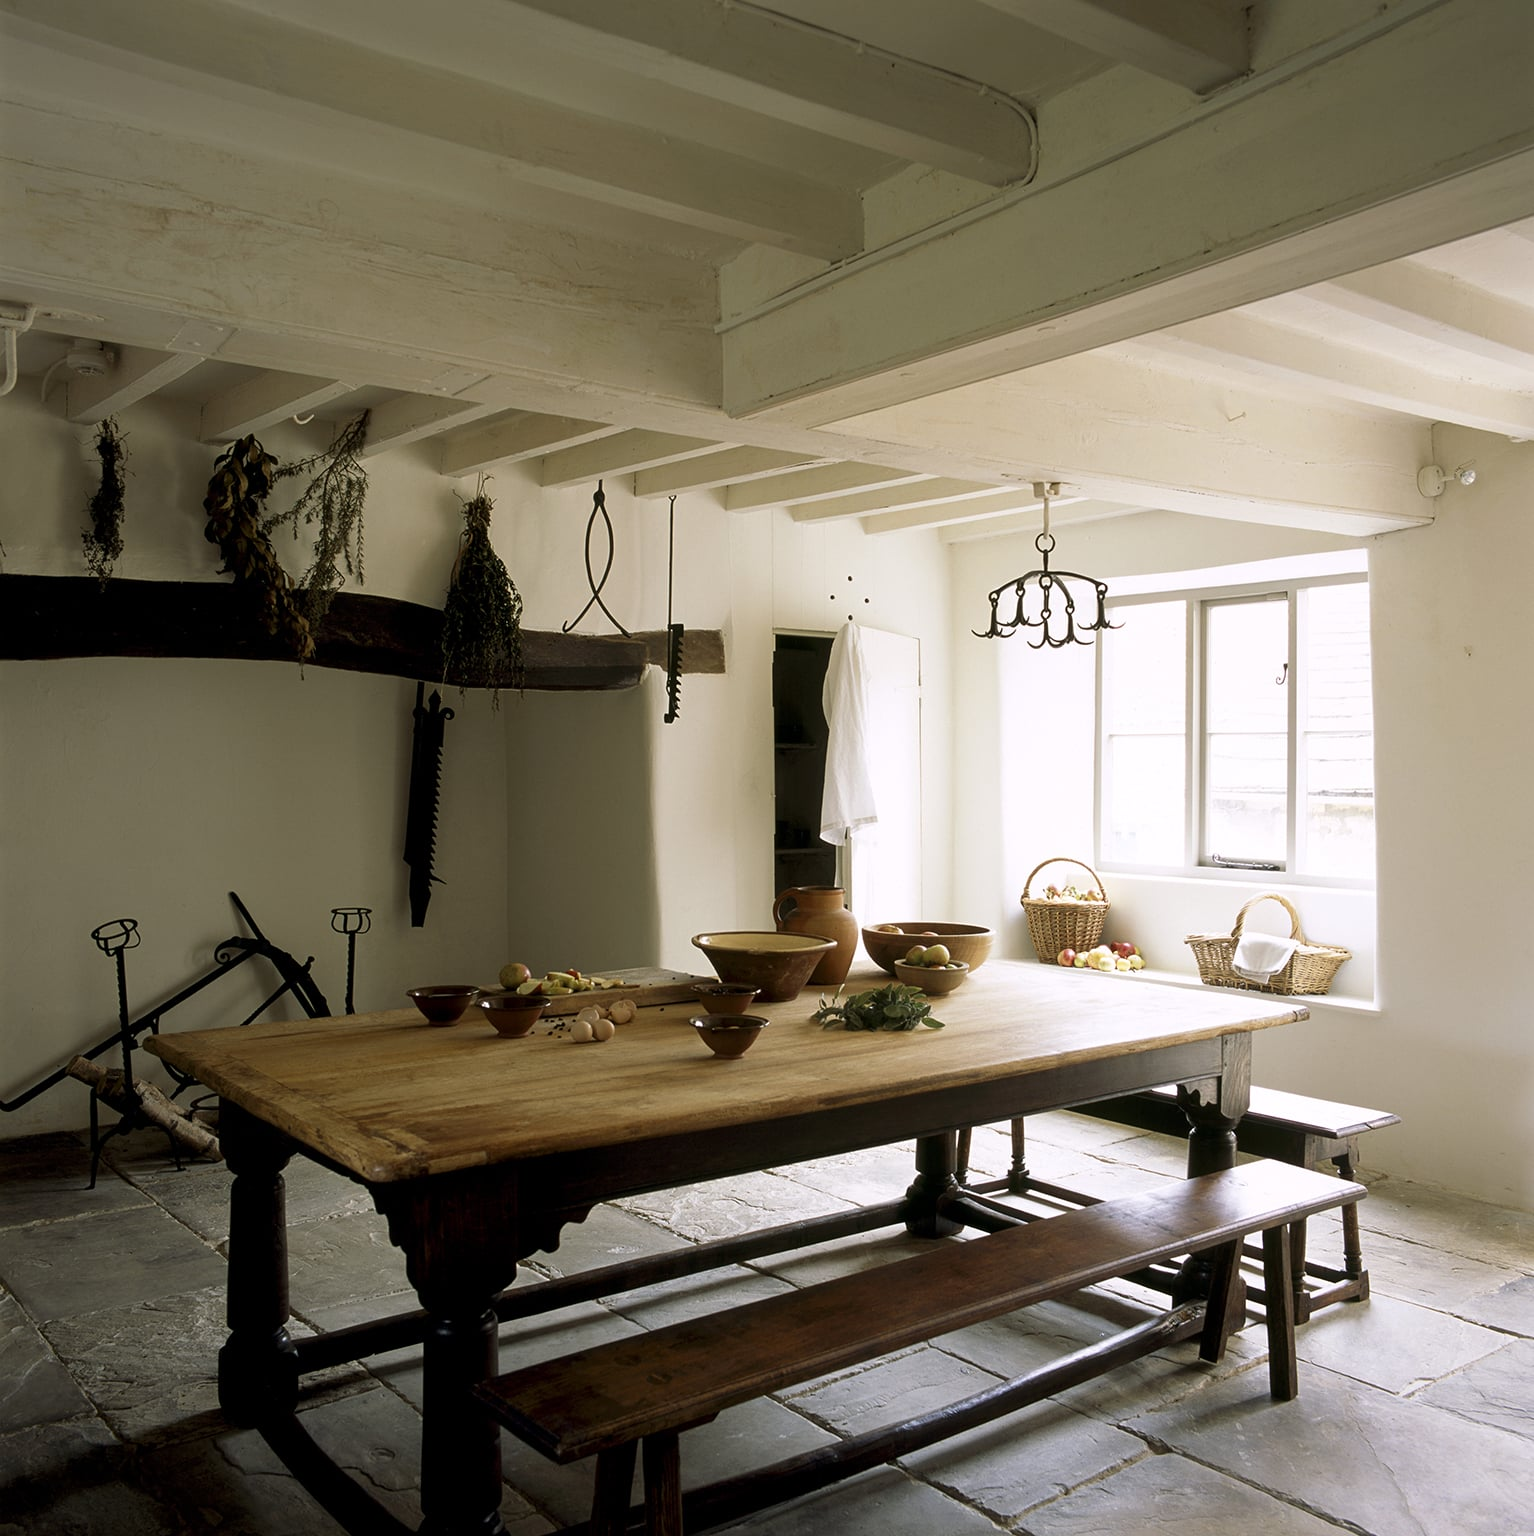 2. Woolsthorpe Manor, Lincolnshire - Free with National Art Pass